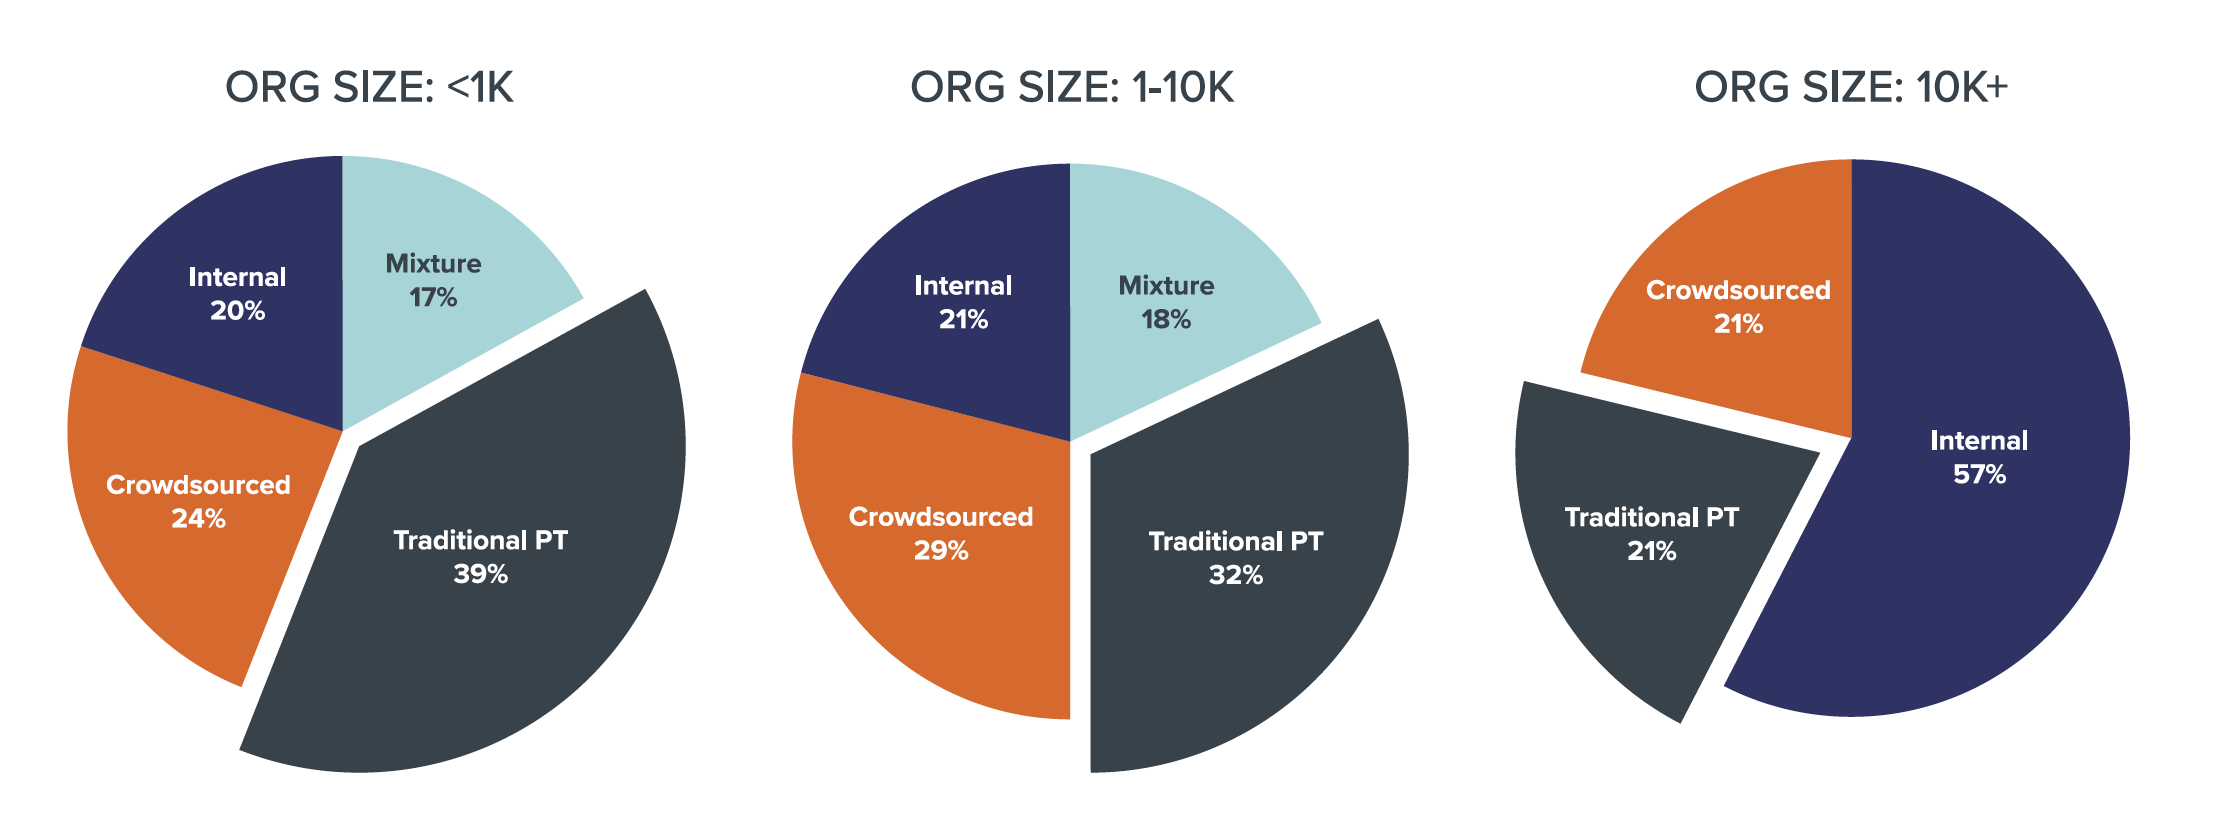 Larger organizations are moving away from traditional penetration testing service.